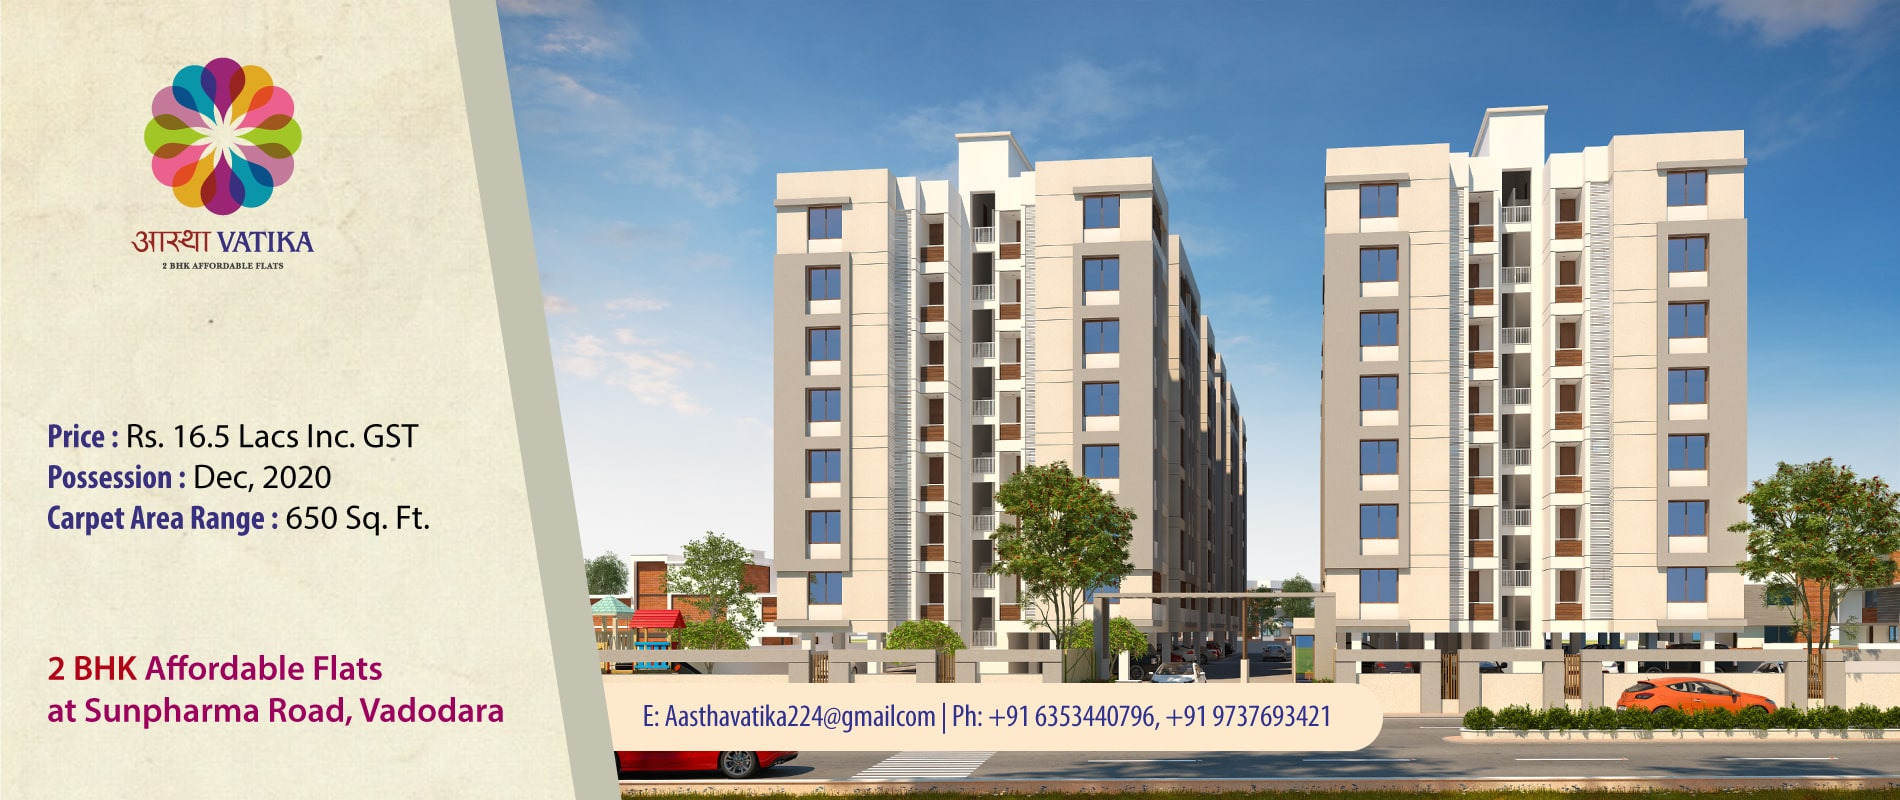 2 BHK Affordable Flats at Sunpharma Road Vadodara